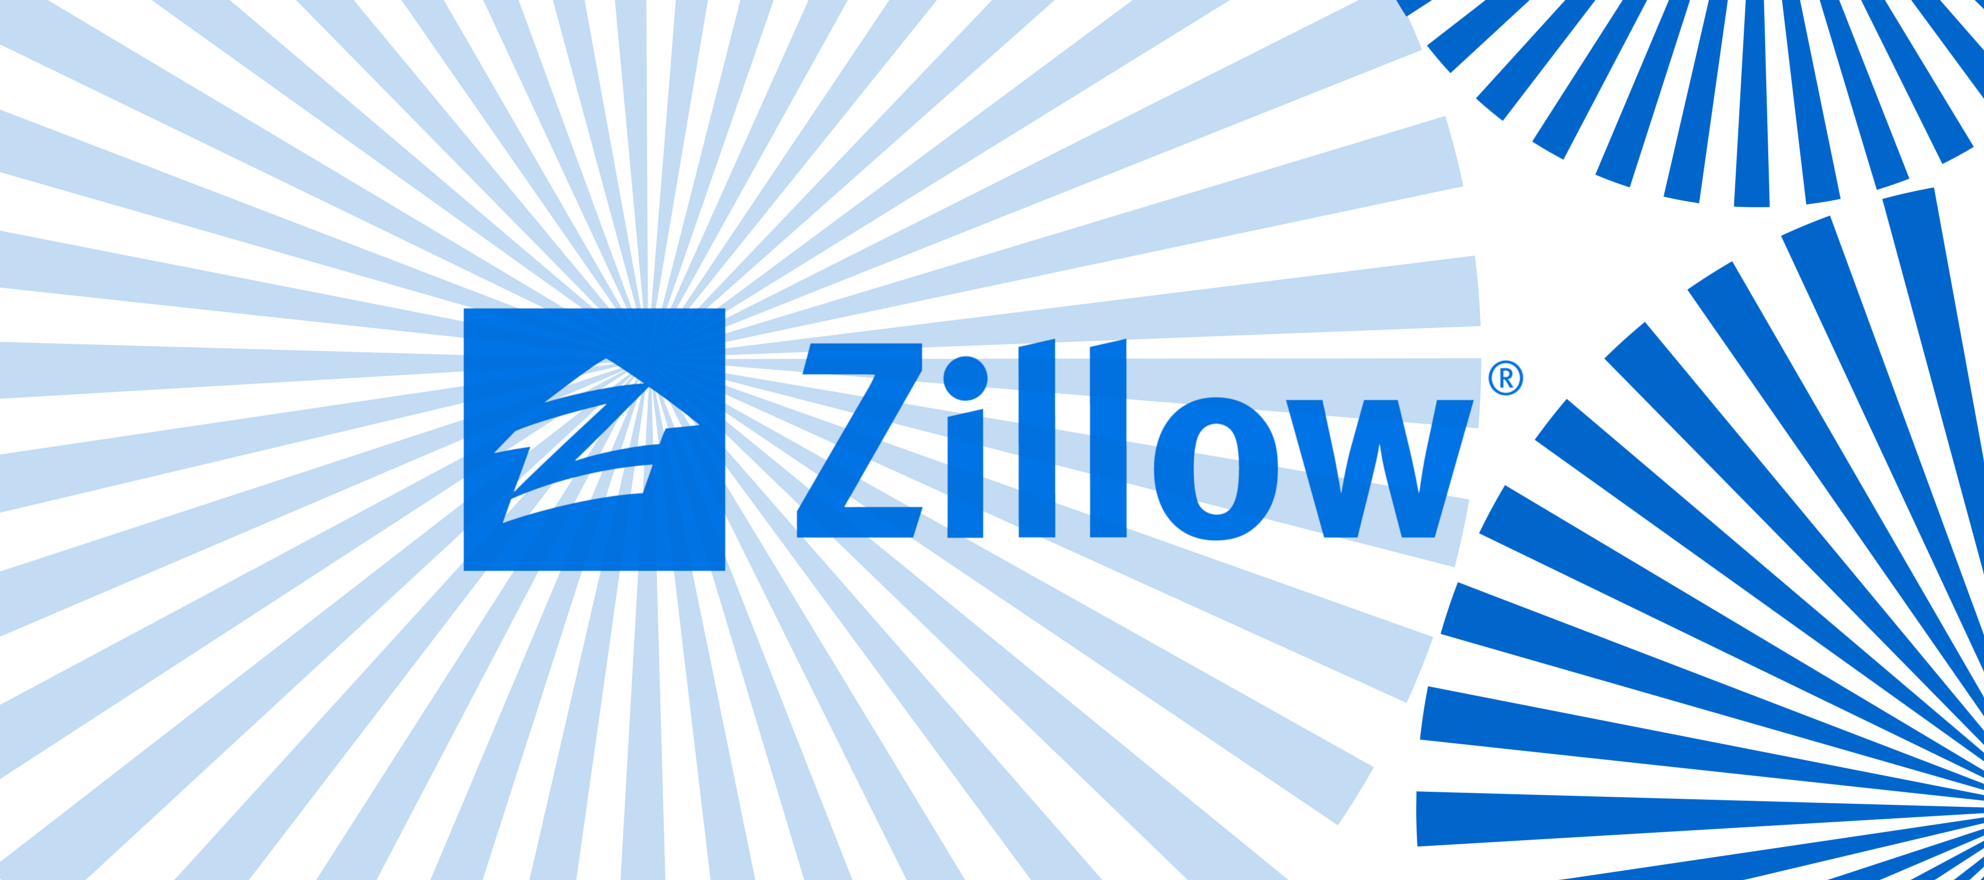 Zillow dating